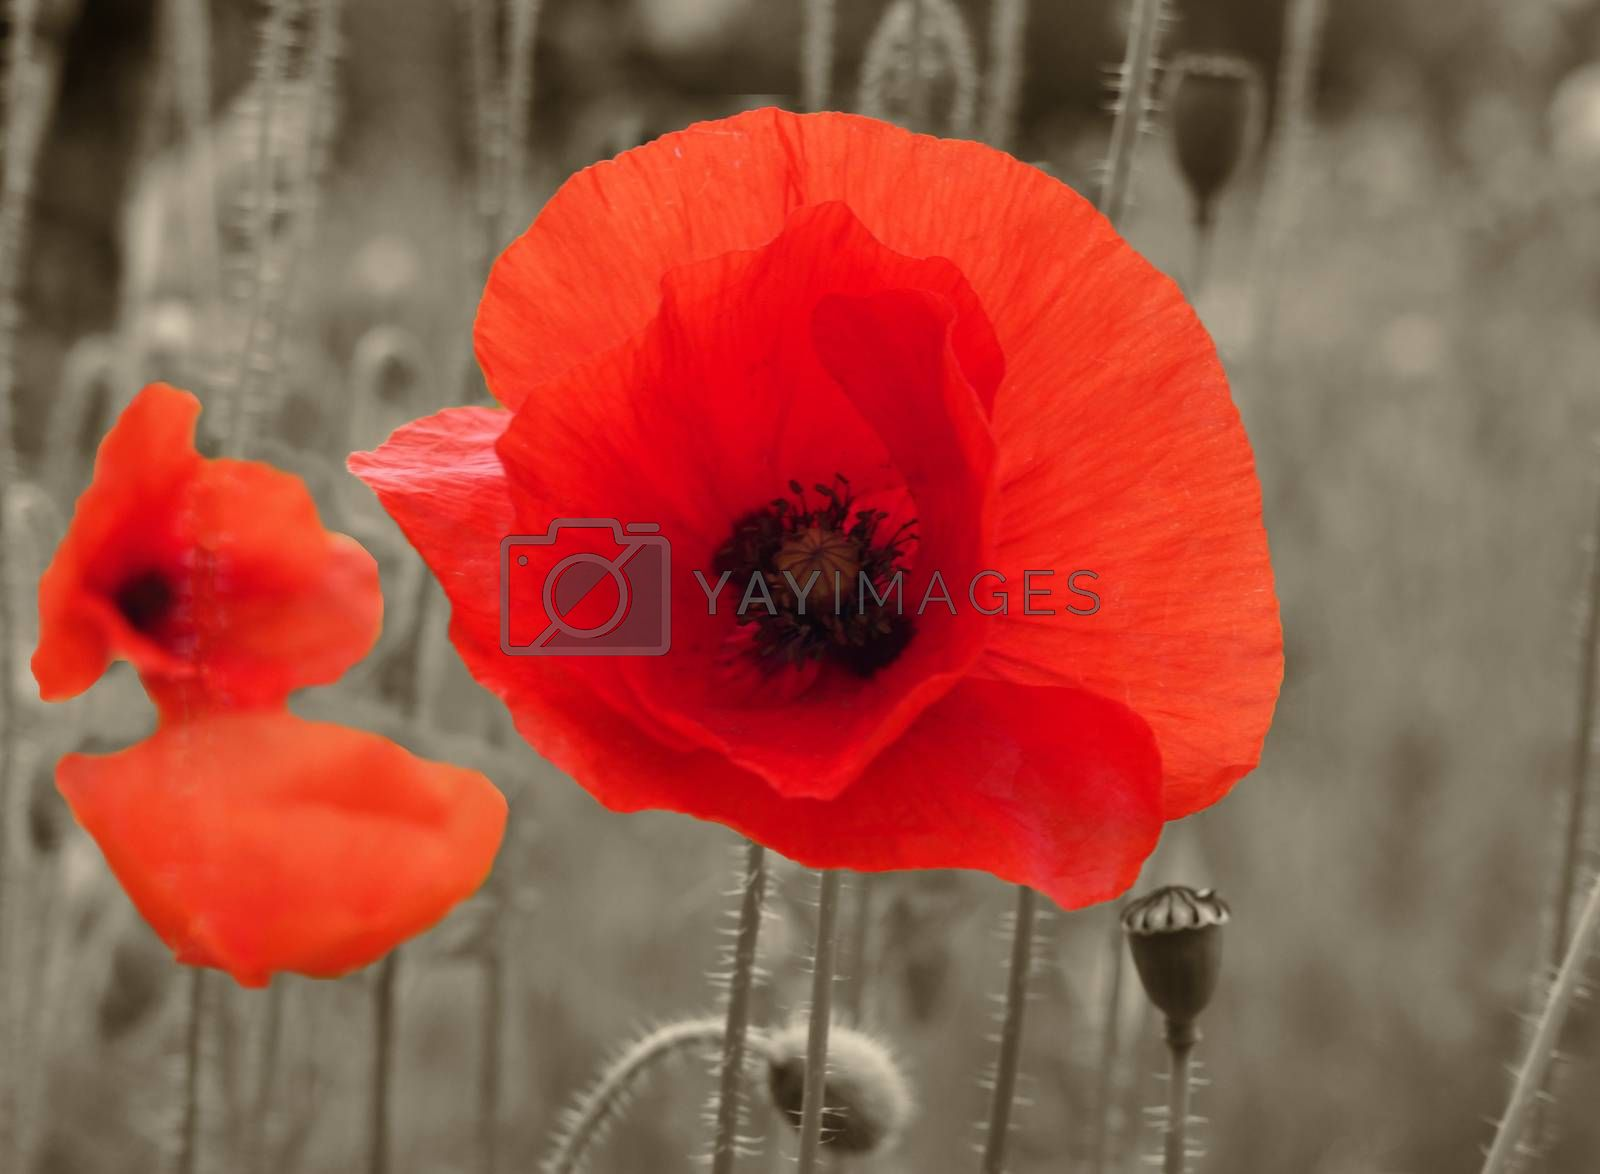 a close up of a bright red common poppy flower with buds with a blurred summer meadow background